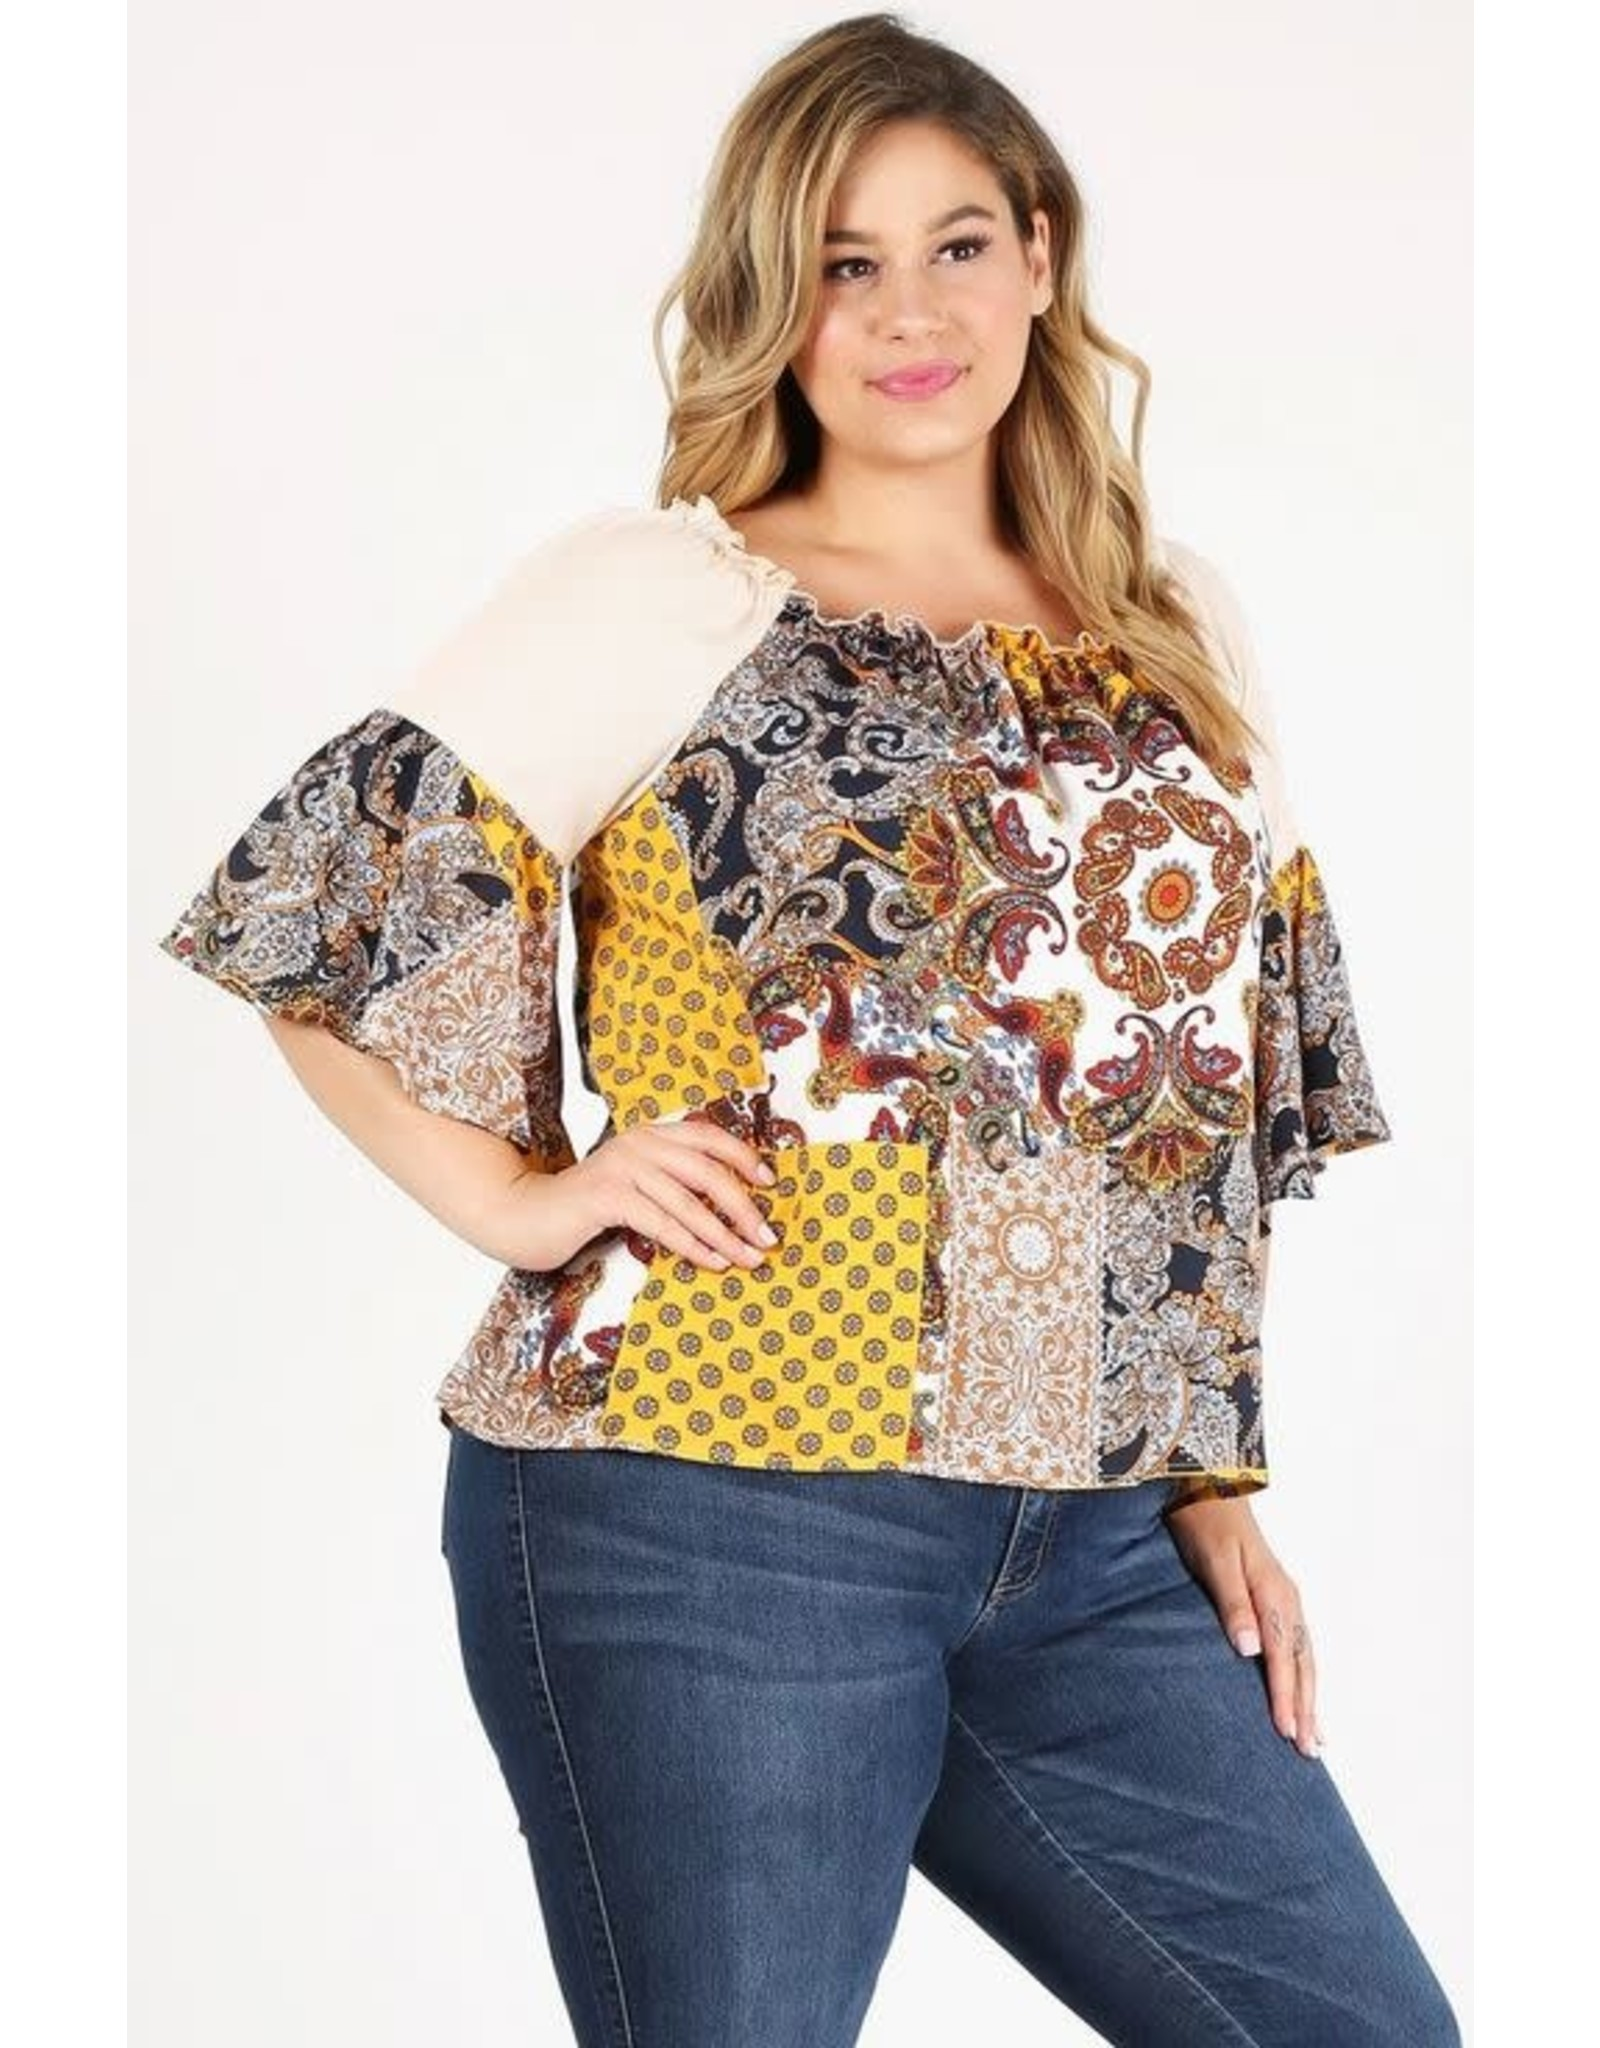 OATMEAL PAISLEY PRINT TOP WITH BELL SLEEVE SQUARE NECKLINE